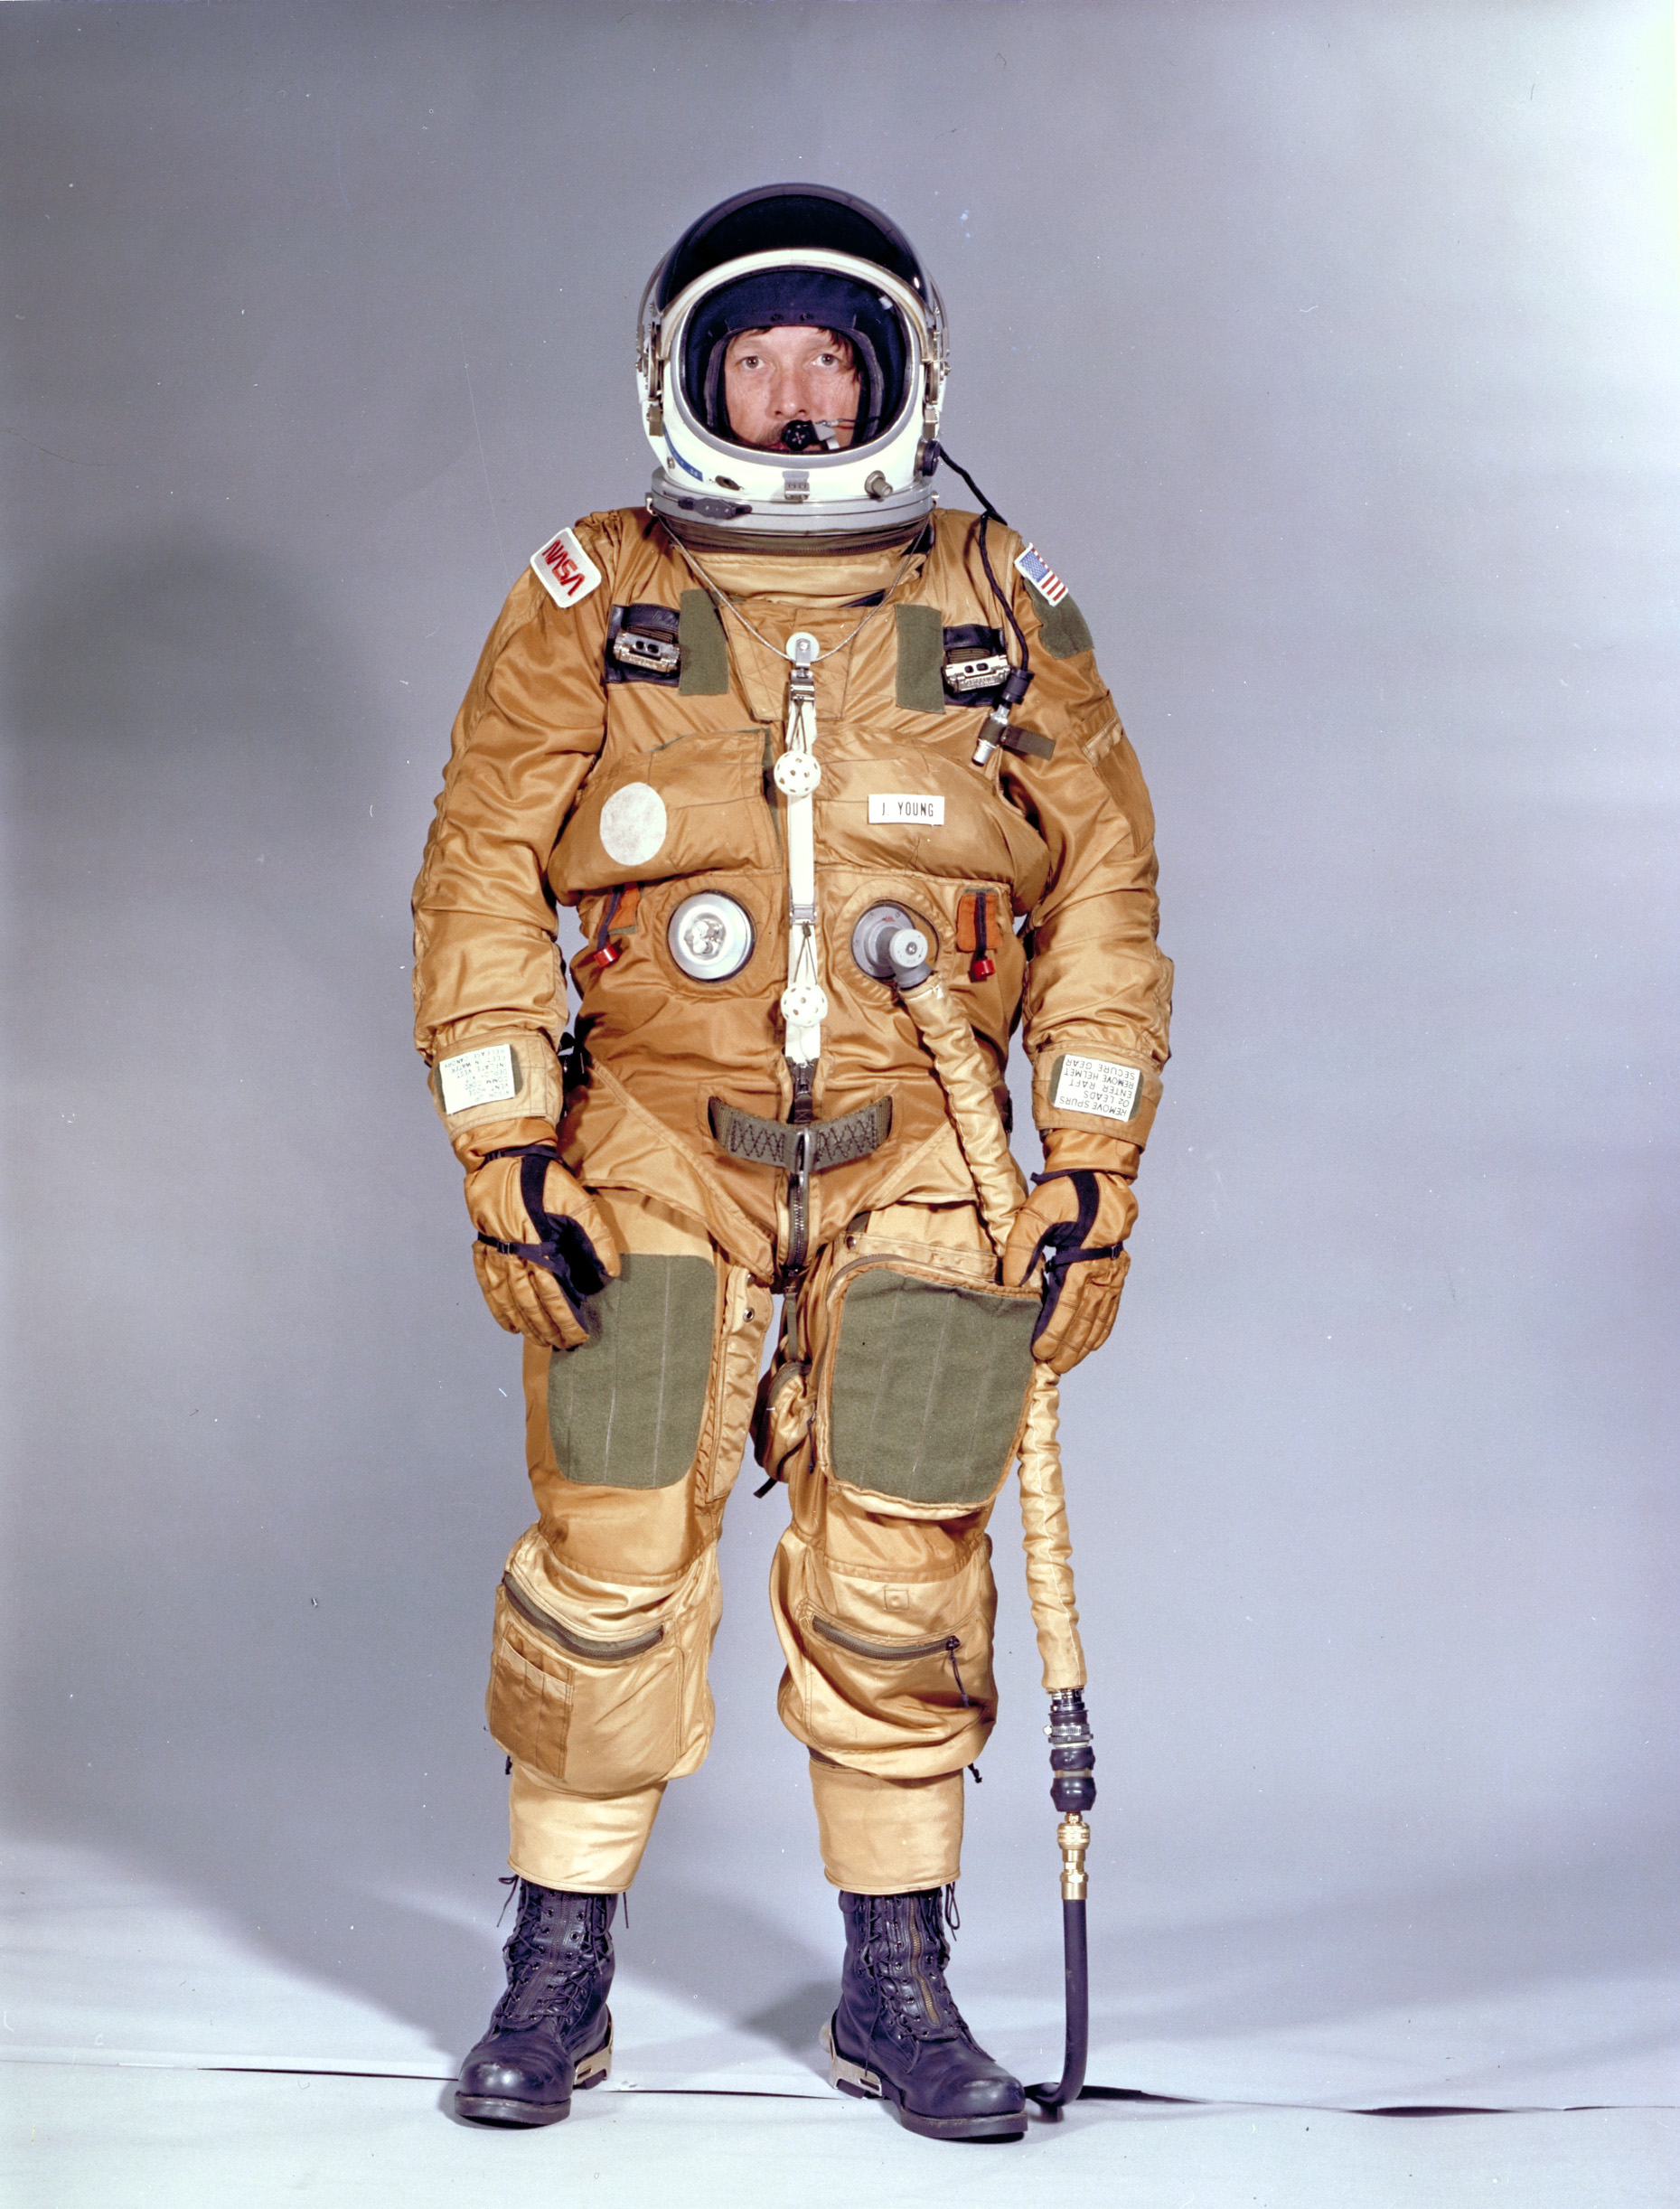 astronaut space suit - photo #30